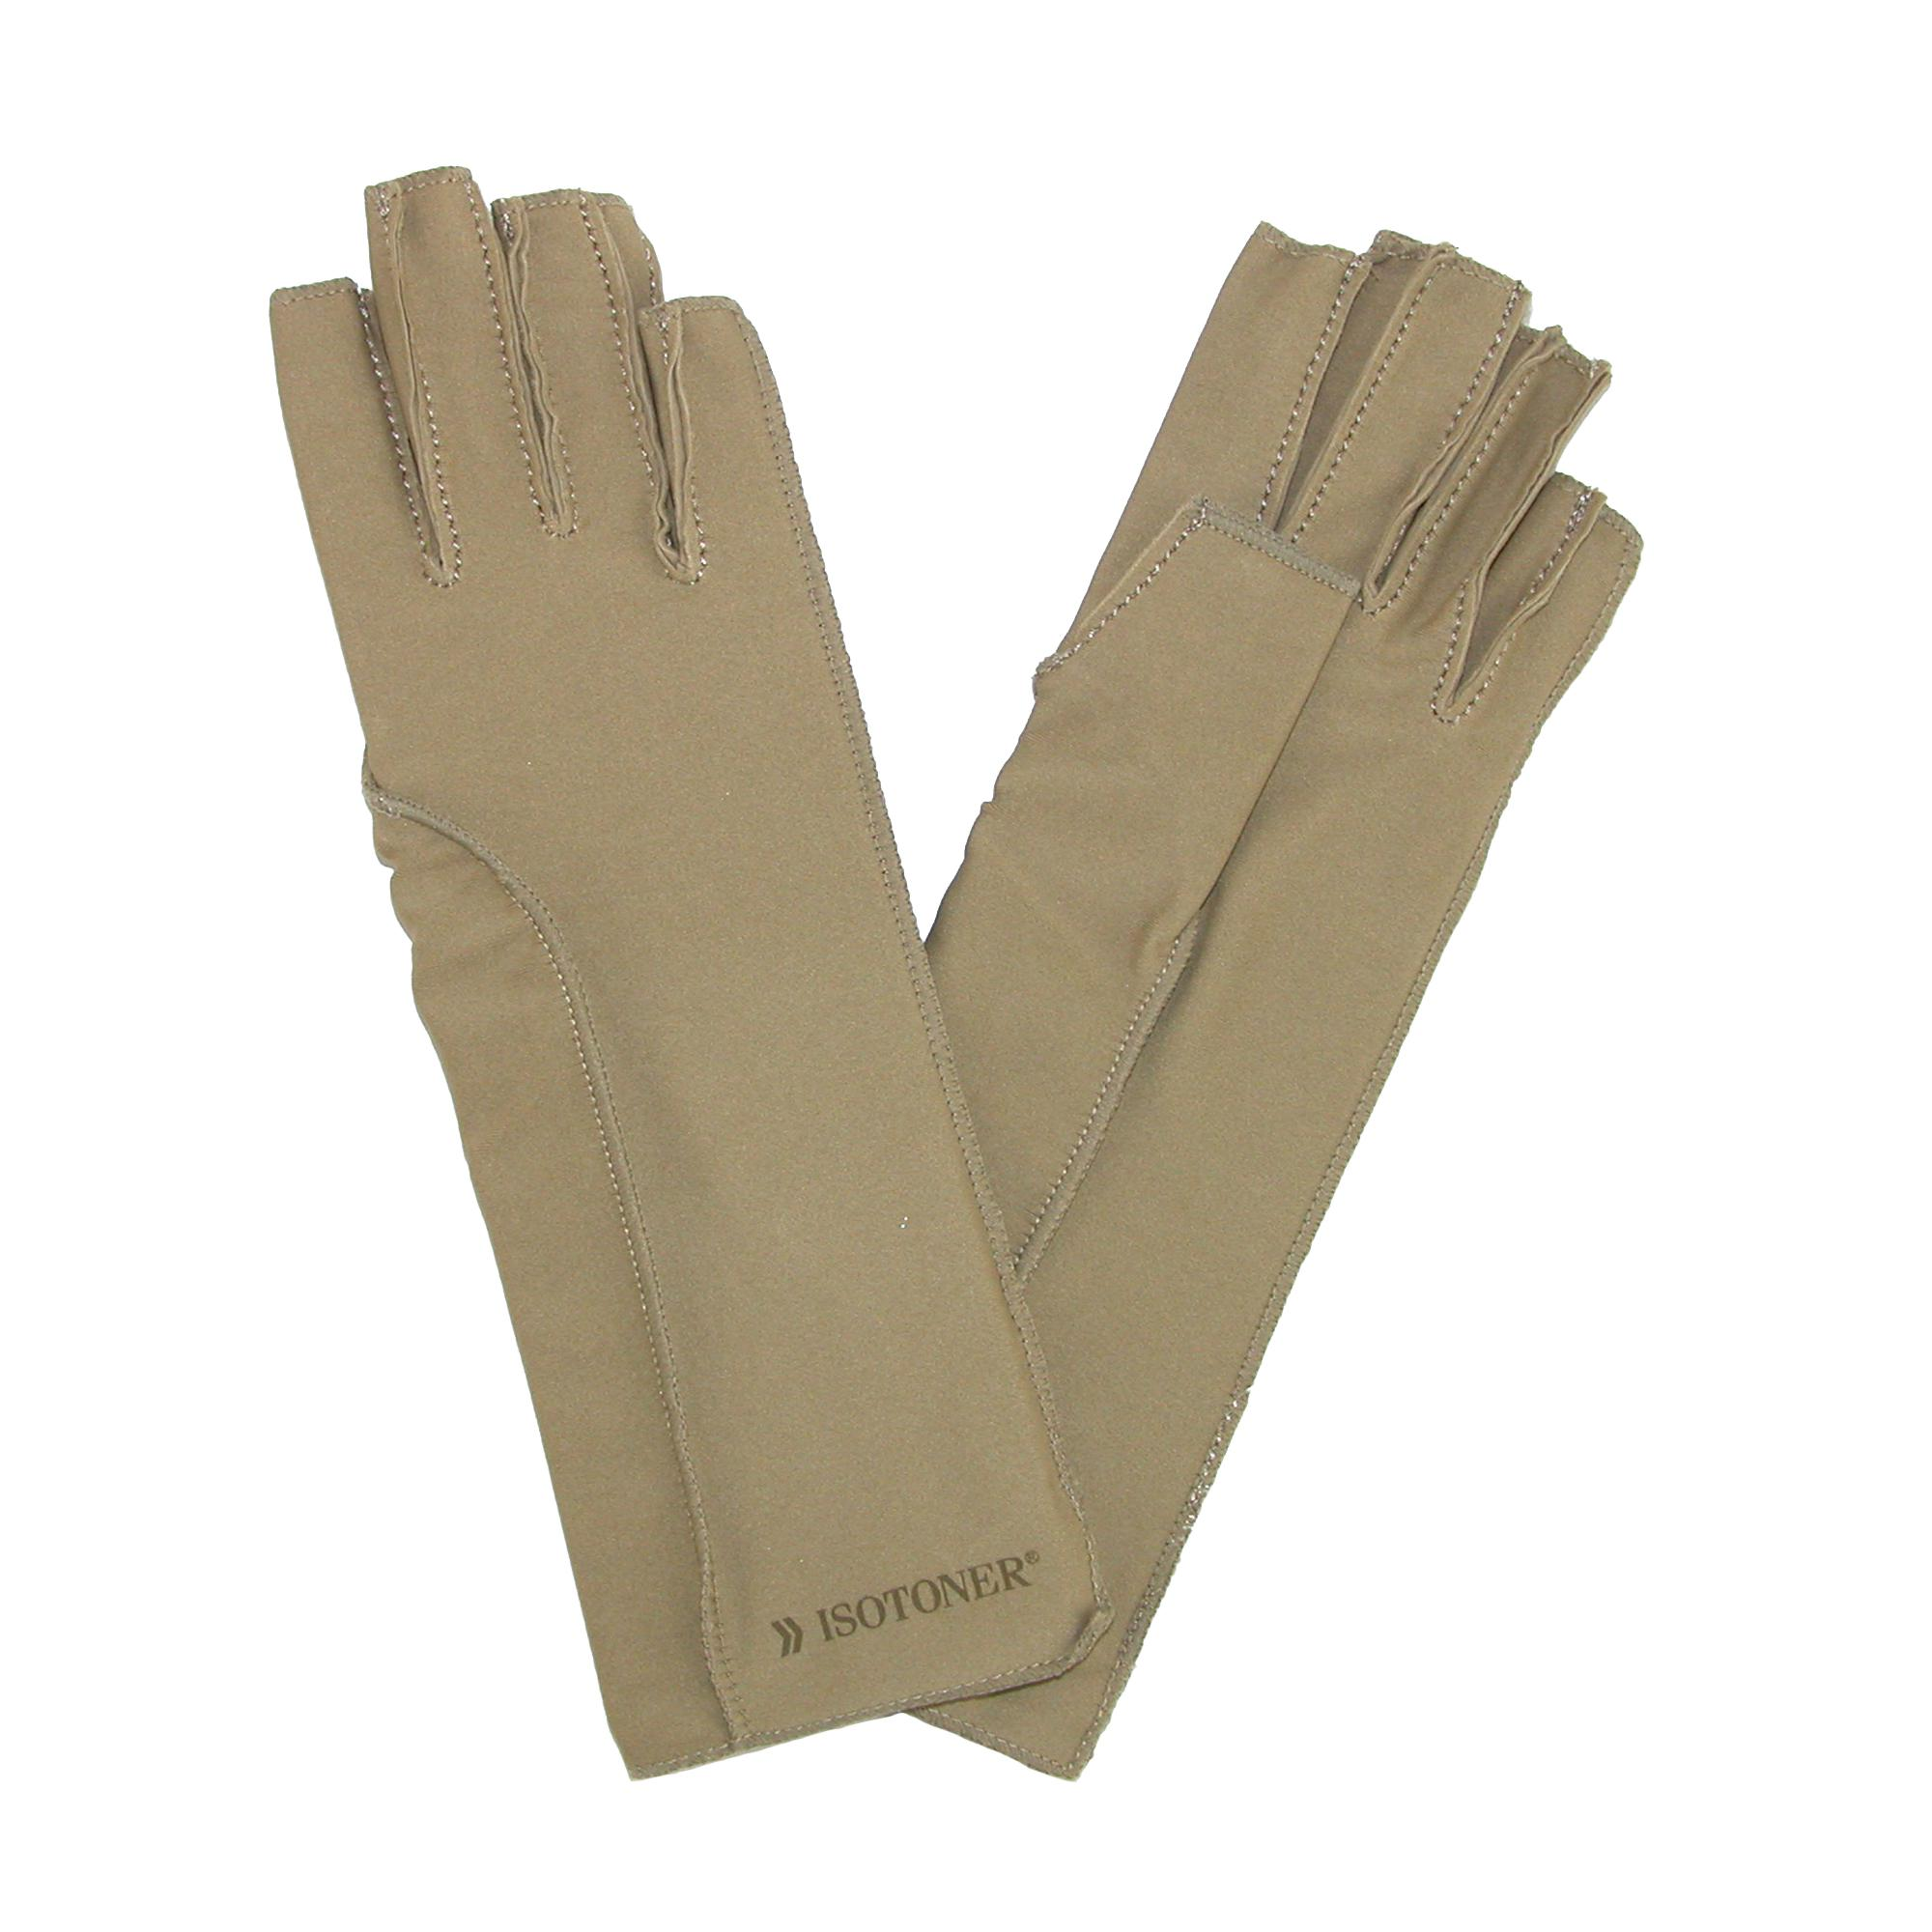 Isotoner_Therapeutic_Compression_Fingerless_Gloves_